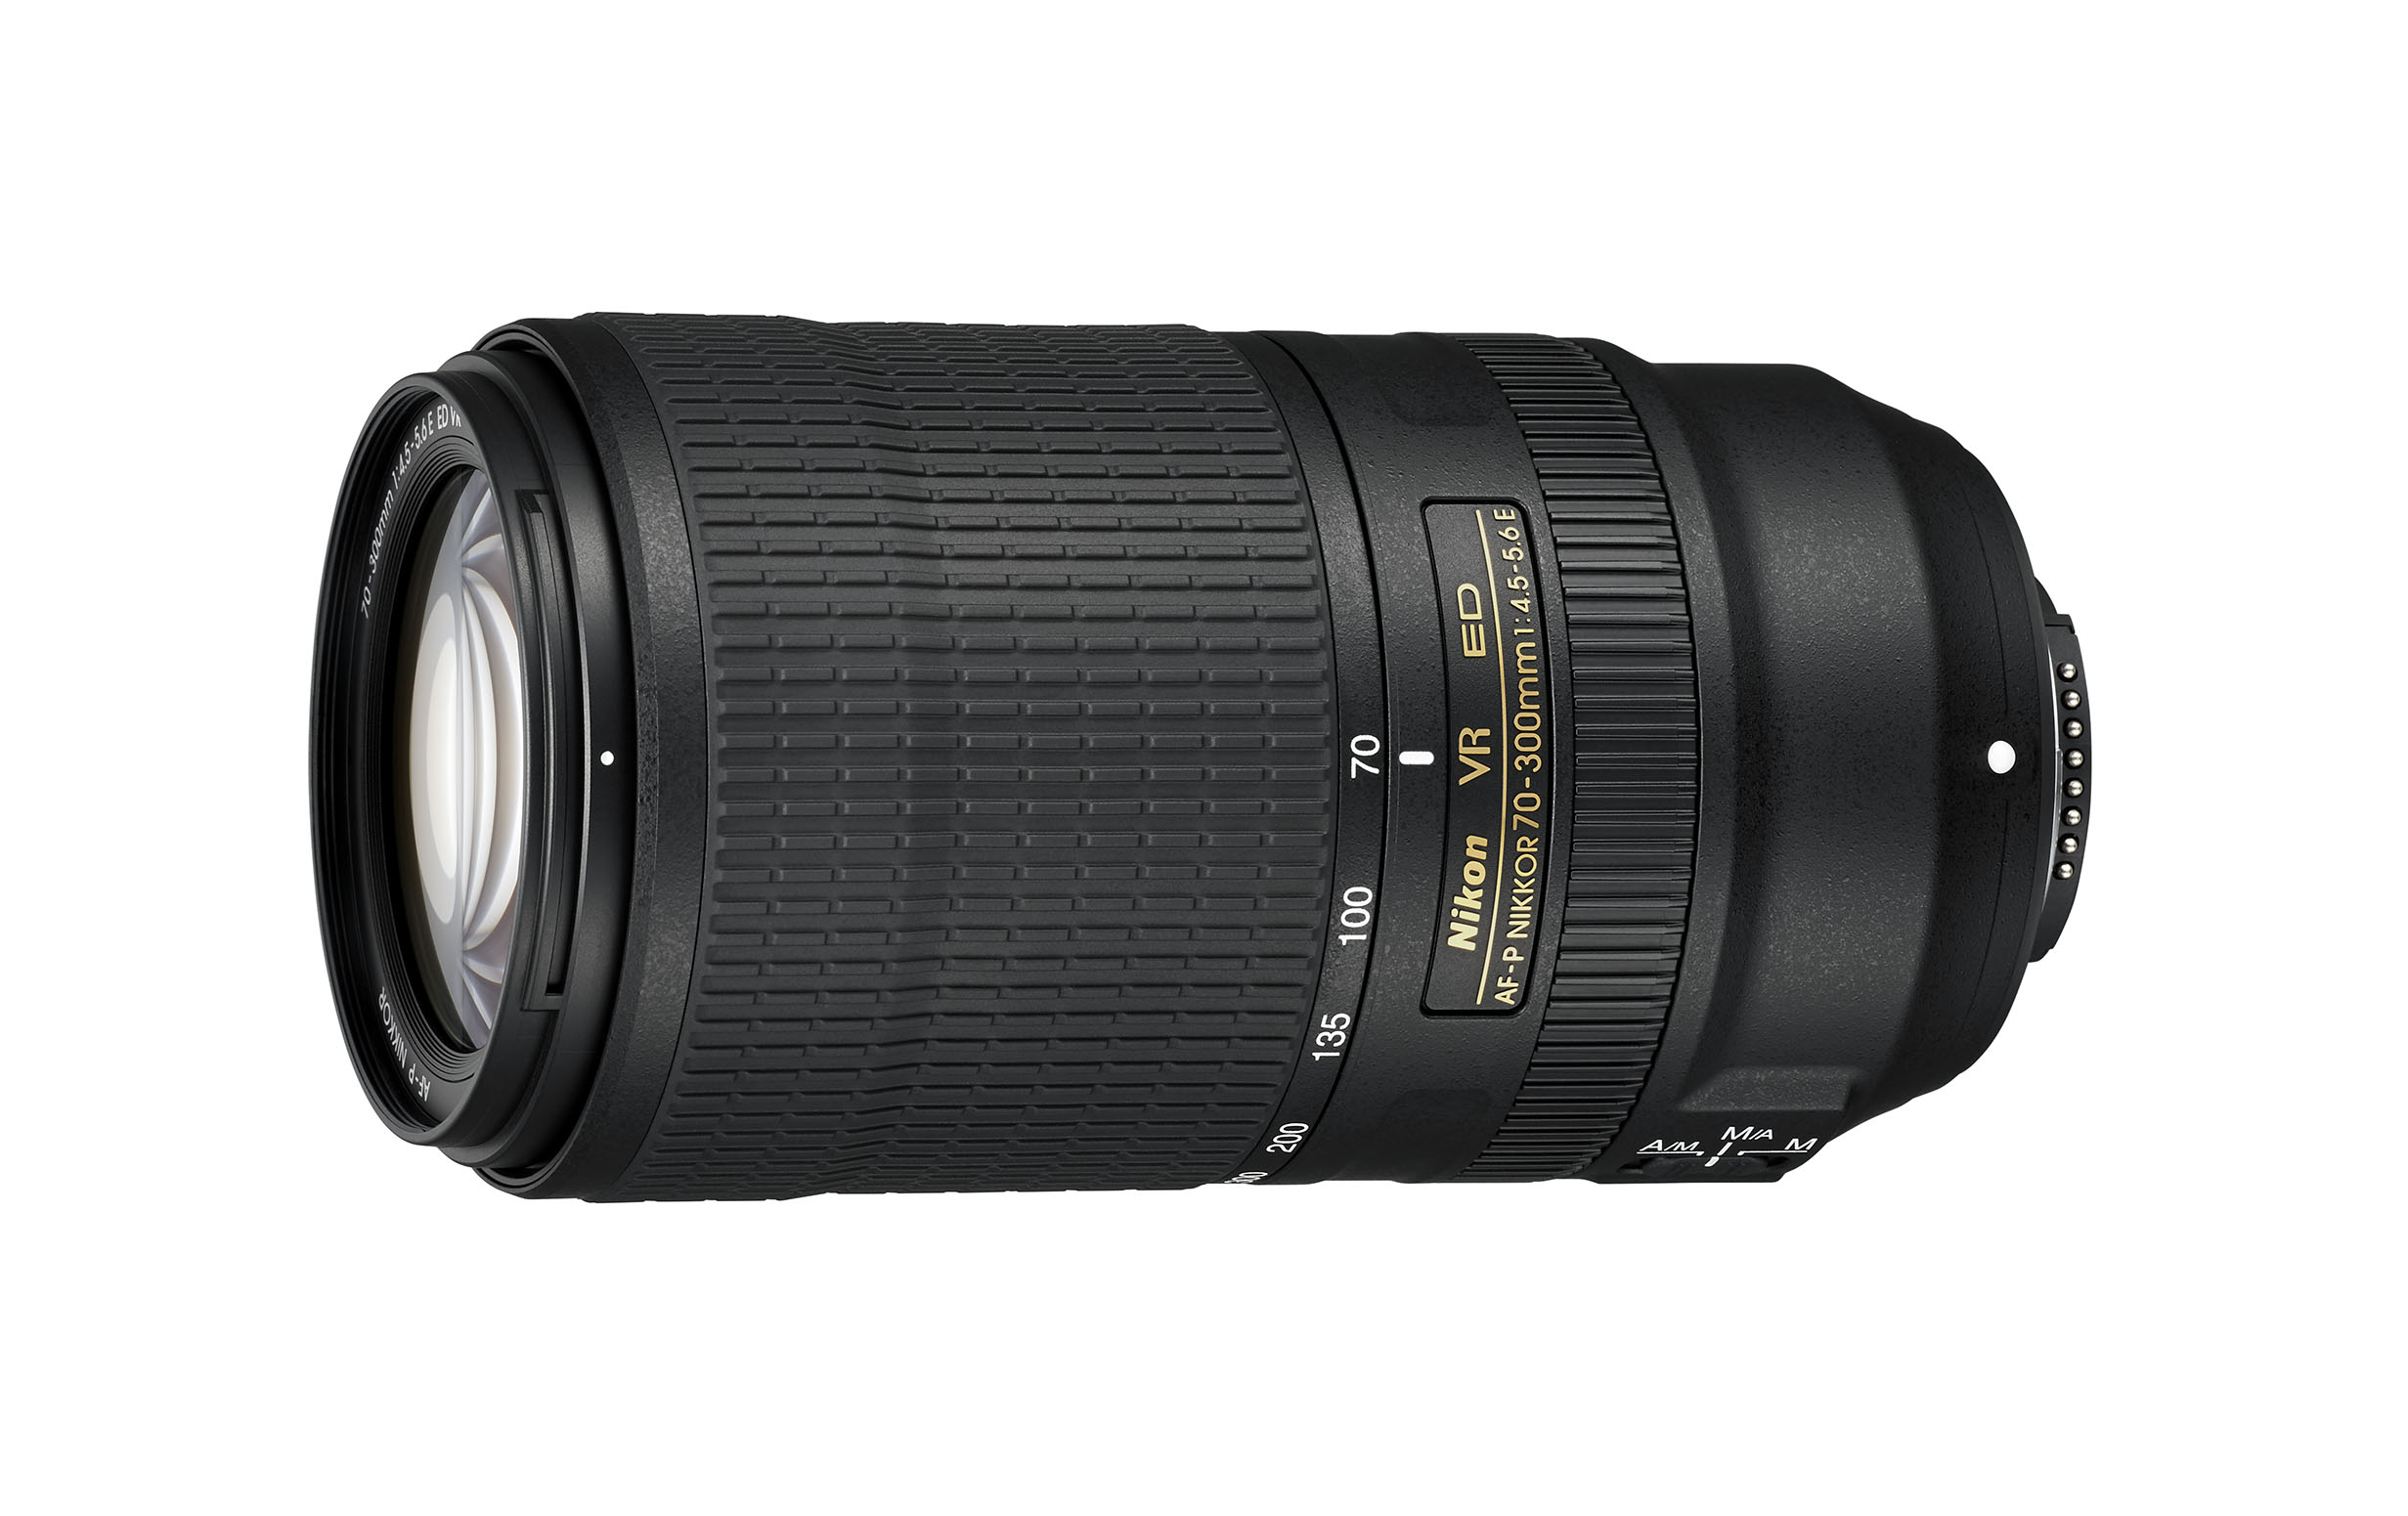 Nikon reveals the AF-P Nikkor 70-300mm ED VR telephoto zoom for enthusiasts